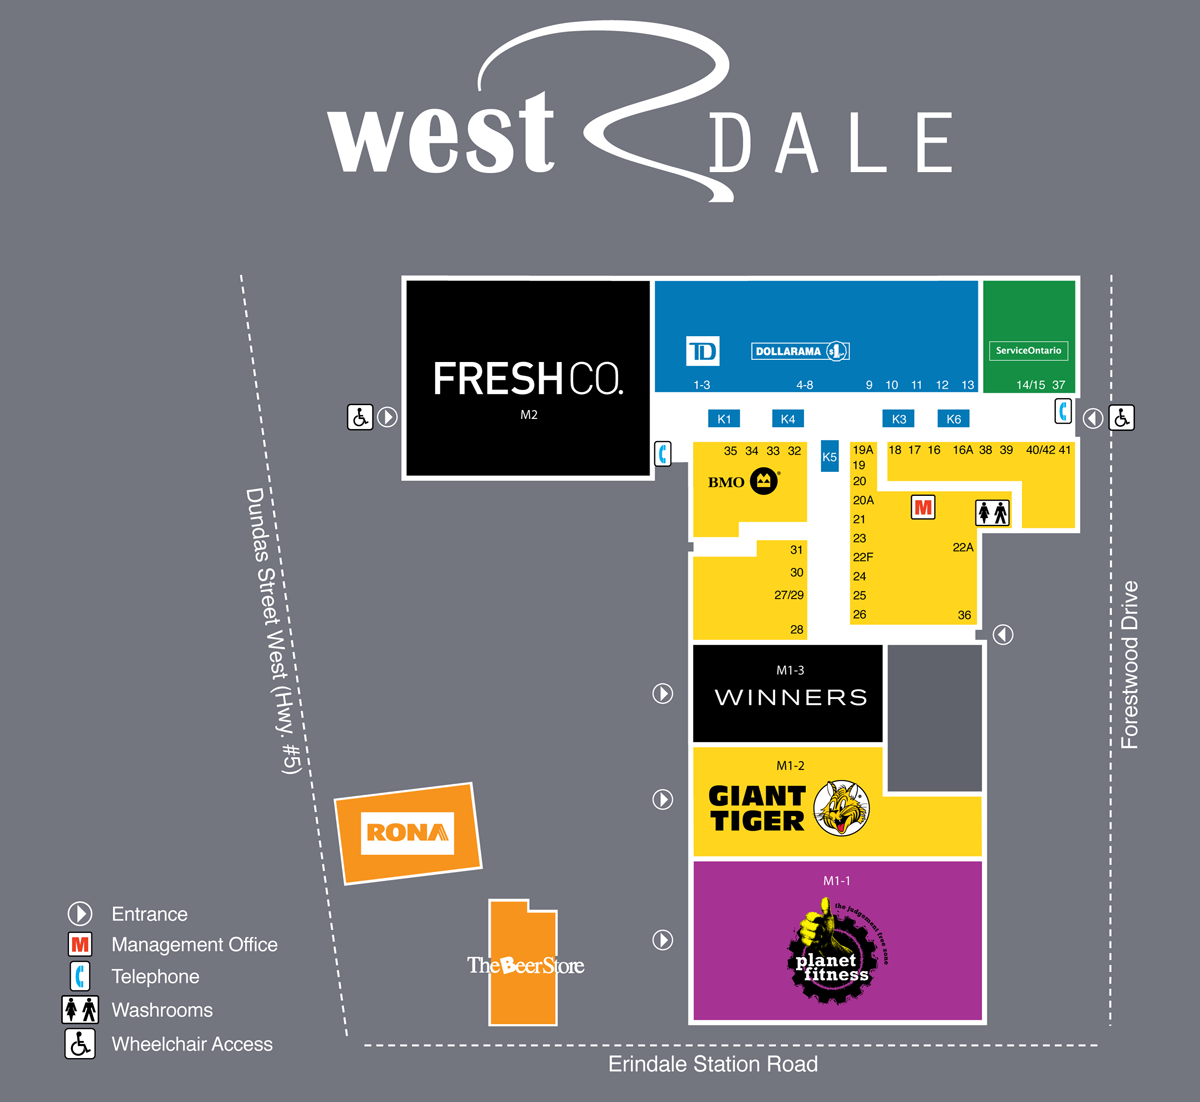 WestdaleMall_map2